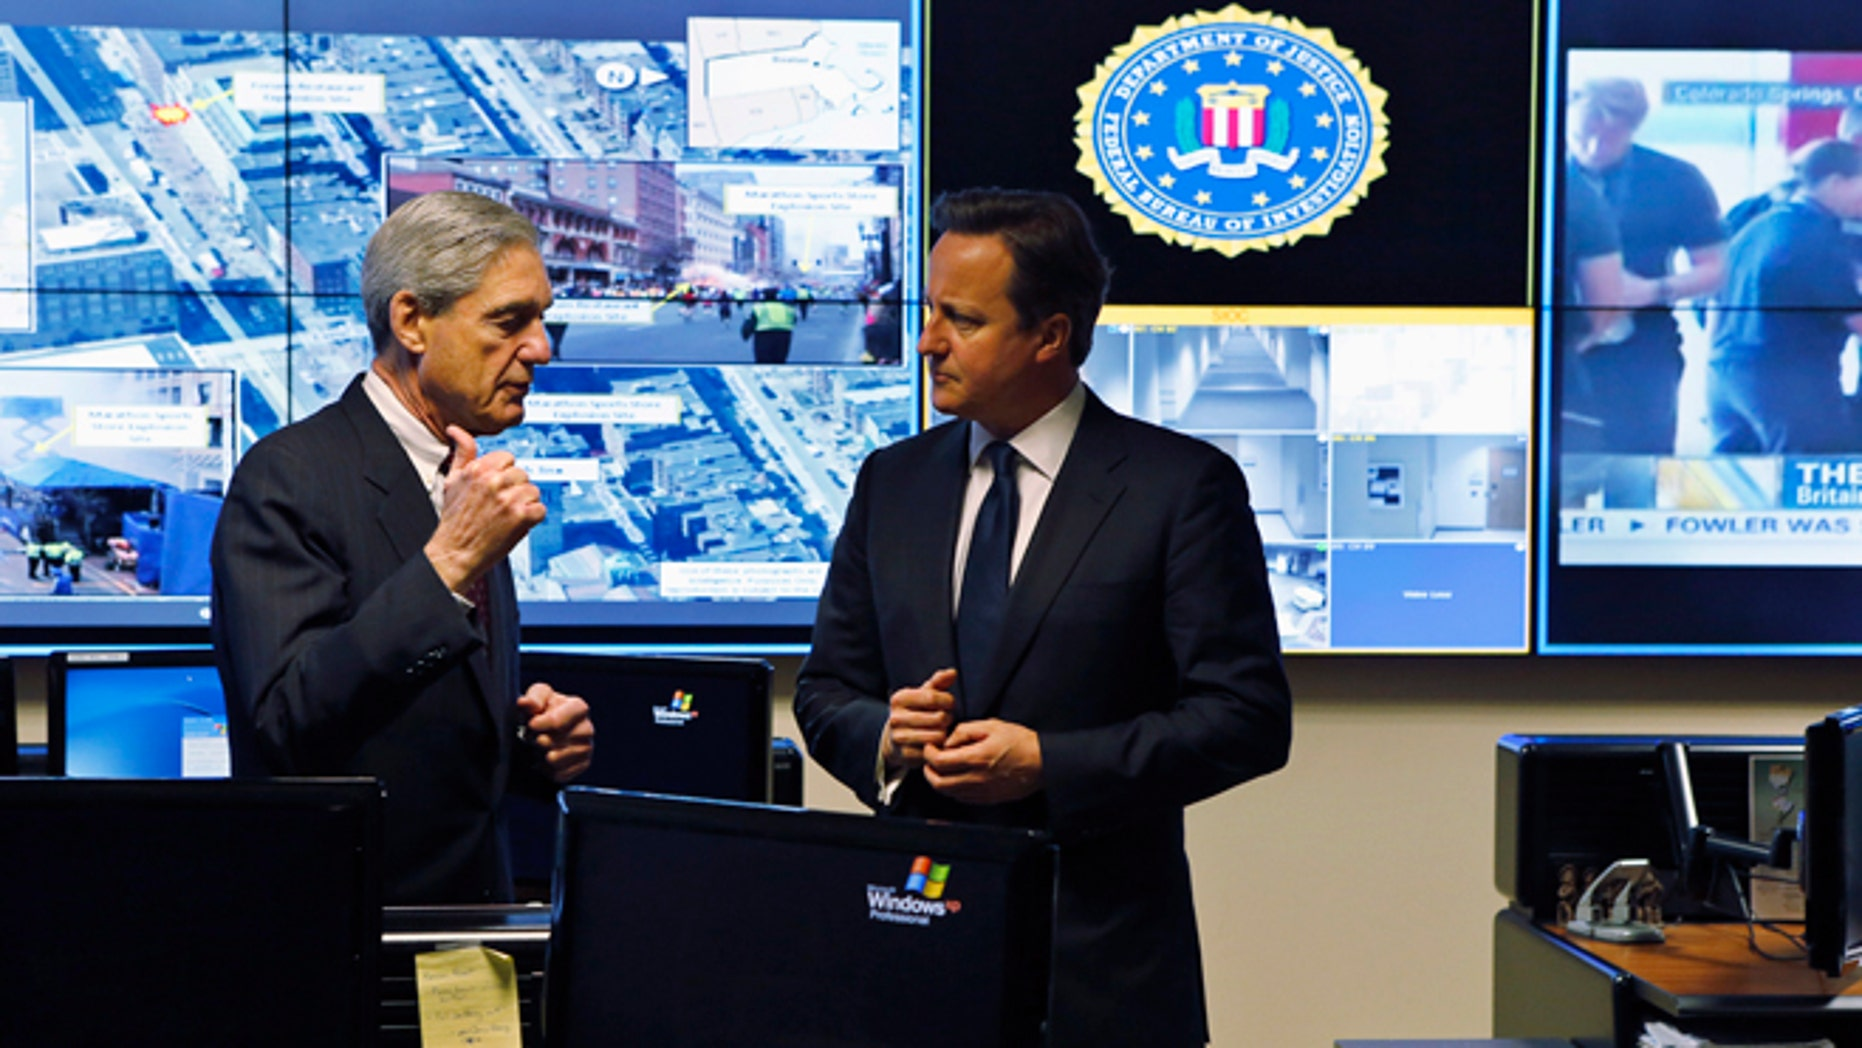 FILE: May 13, 2013: FBI Director Robert Mueller (L) and Britain's Prime Minister David Cameron at the Strategic Information Operations Center at the FBI headquarters in Washington, D.C.